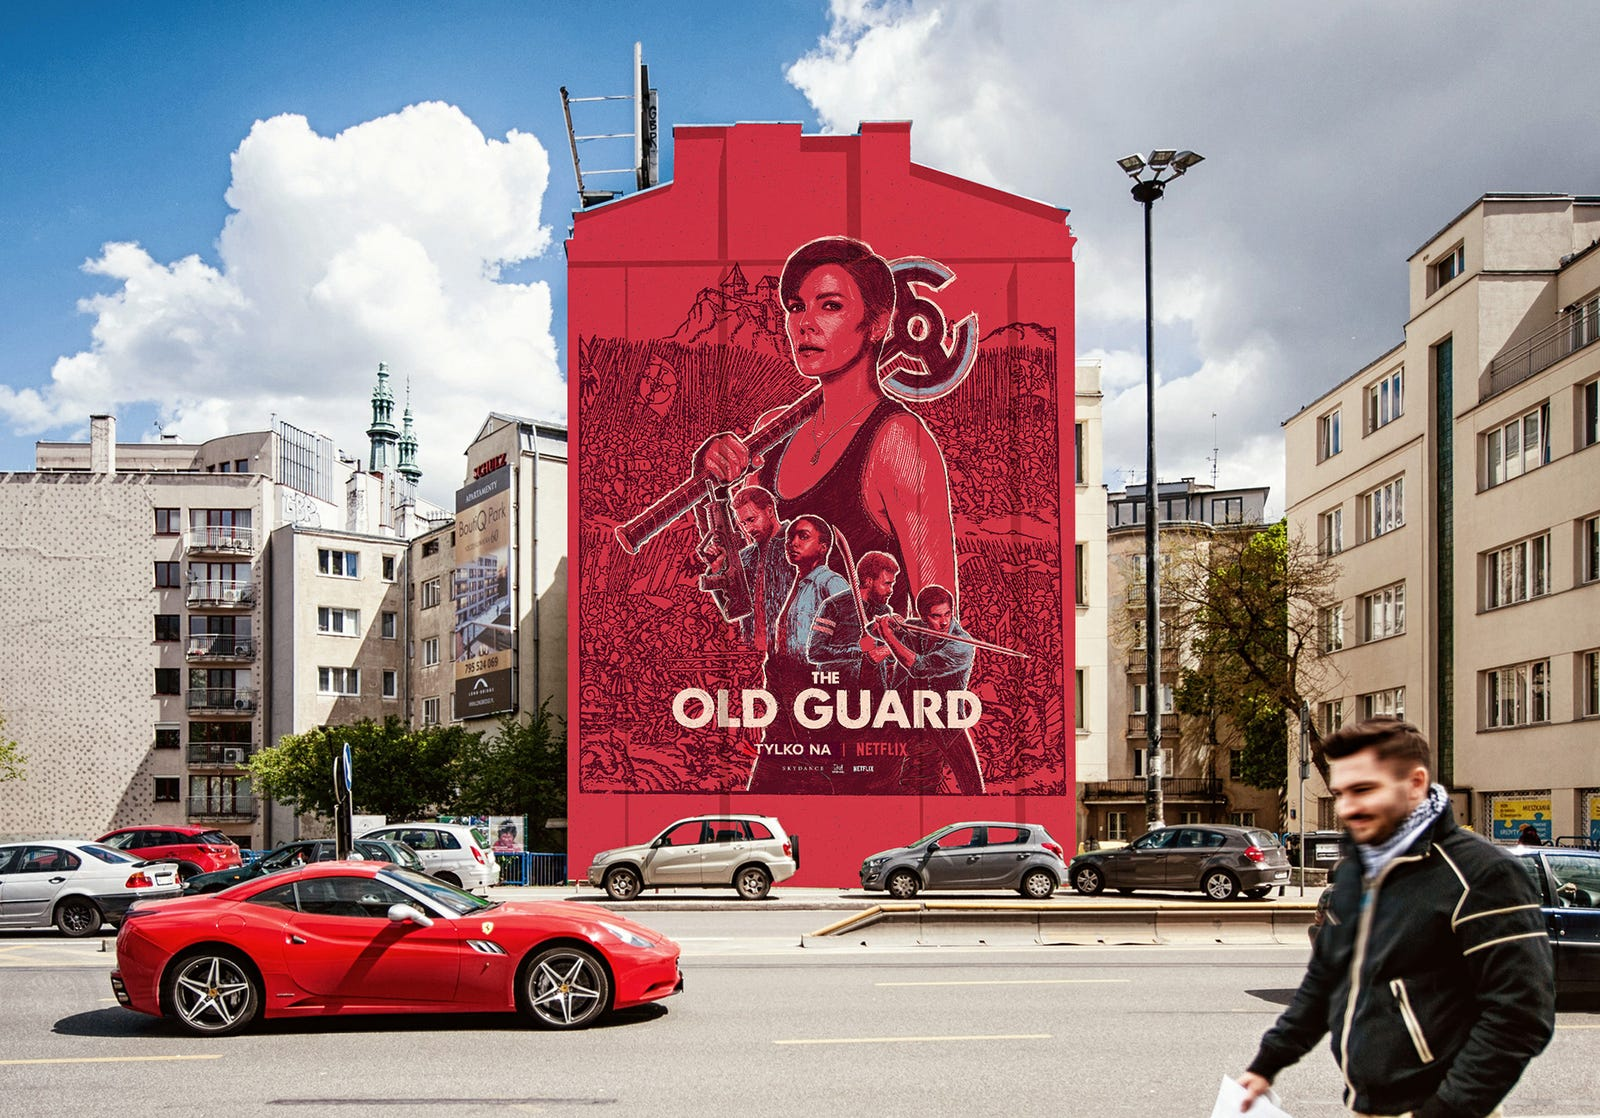 The mural in Warsaw